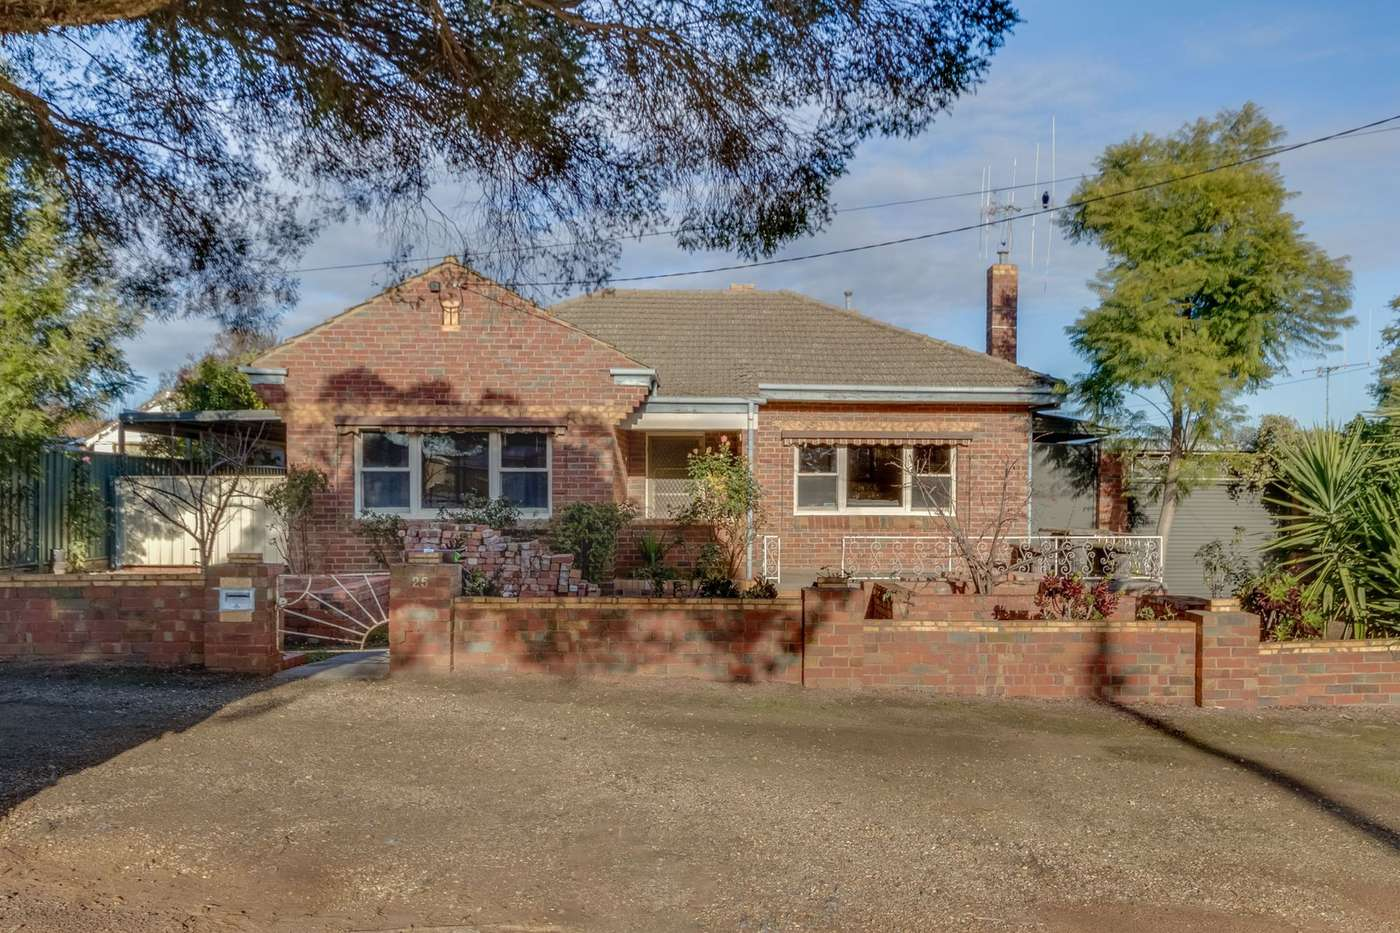 Main view of Homely house listing, 25 Frederick Street, North Bendigo, VIC 3550